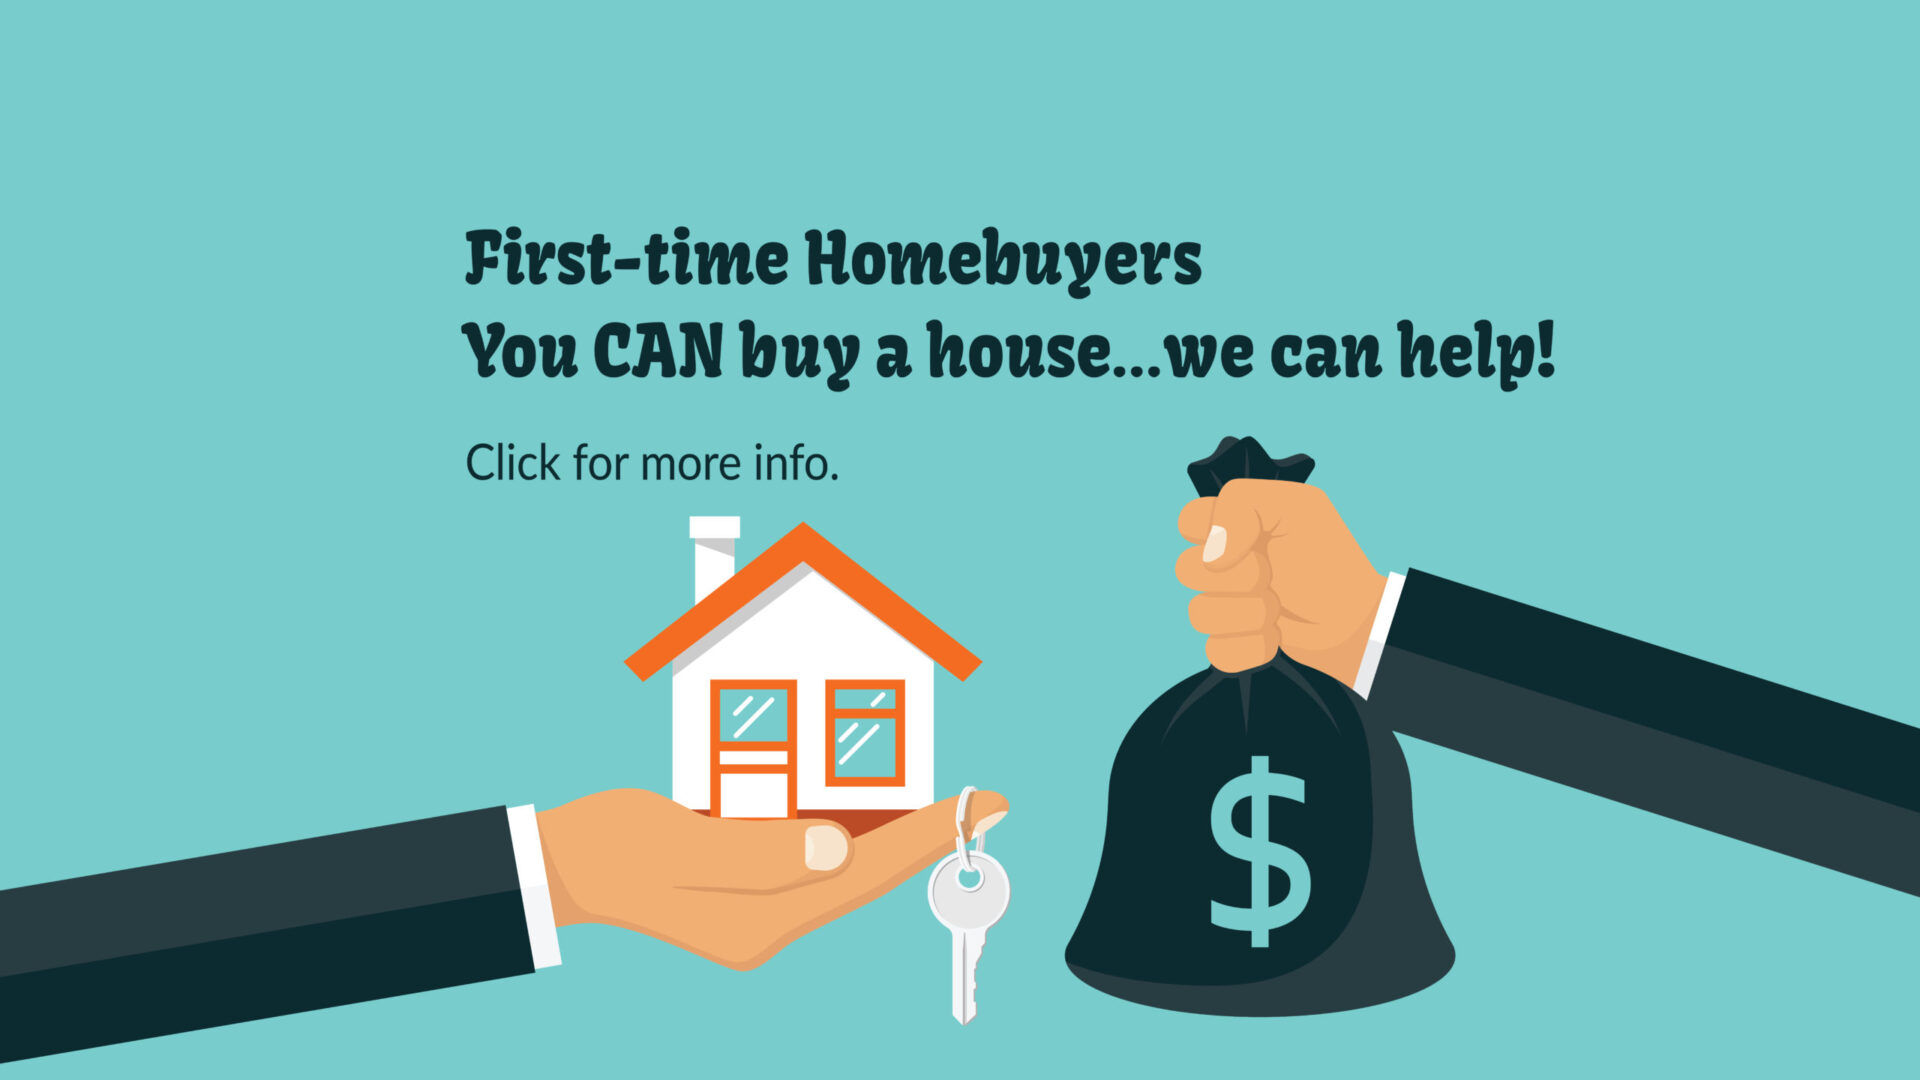 Teal background and hand holding a bag of money and a house to represent Mortgage Grant from Federal Home Loan Bank of Des Moines. First time home buyers you can buy a house and we can help.